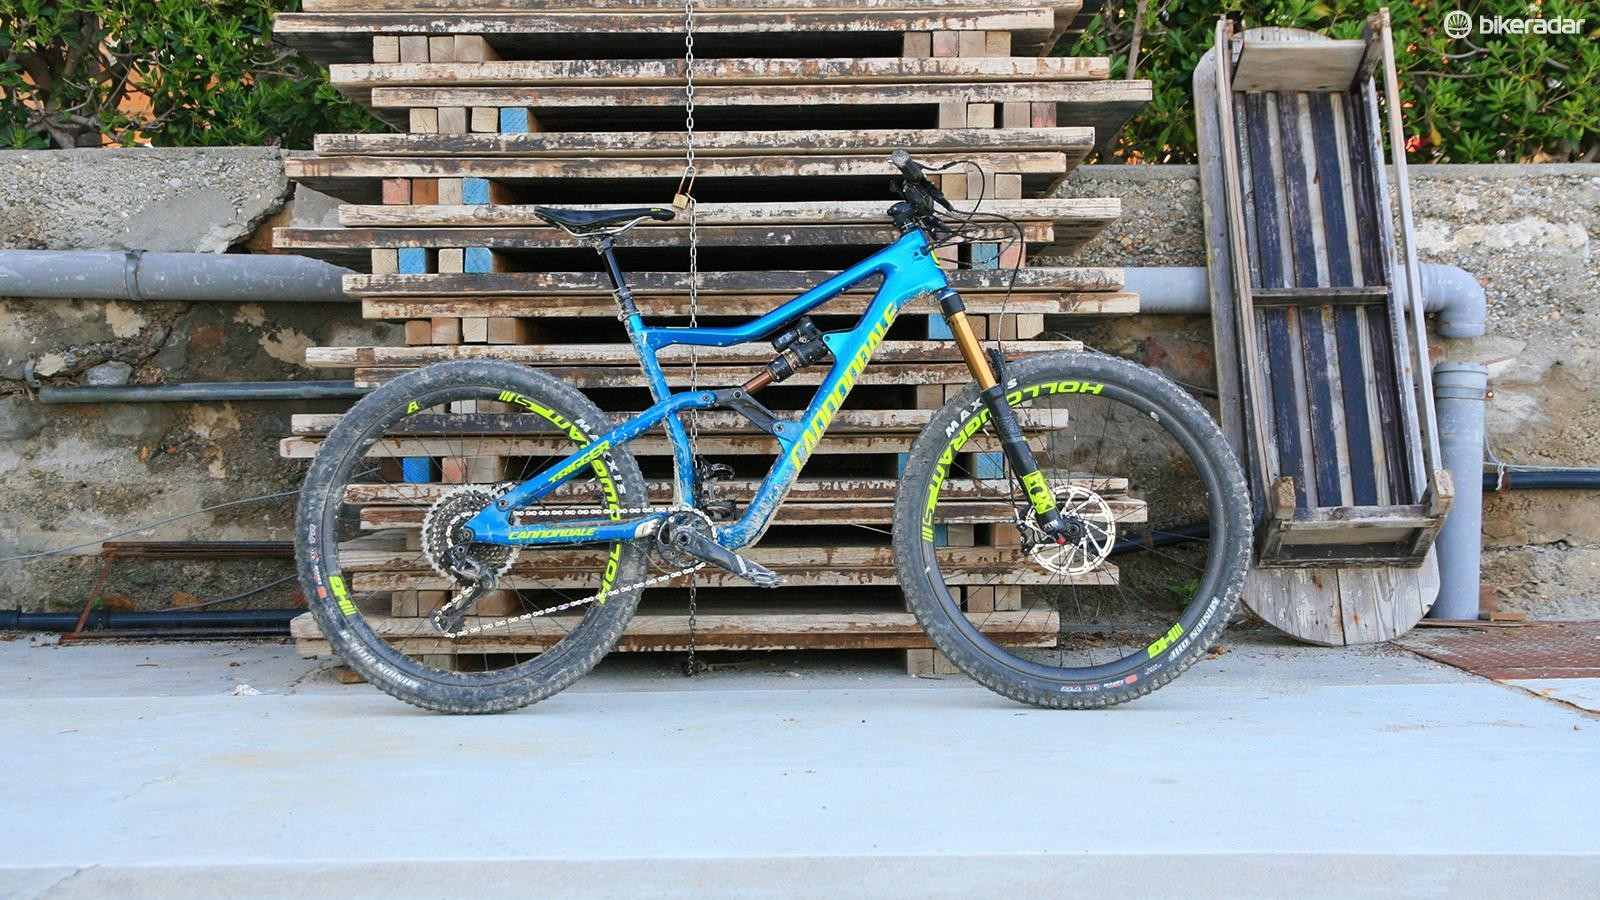 The 145mm travel Trigger is an all-day rider's trail bike